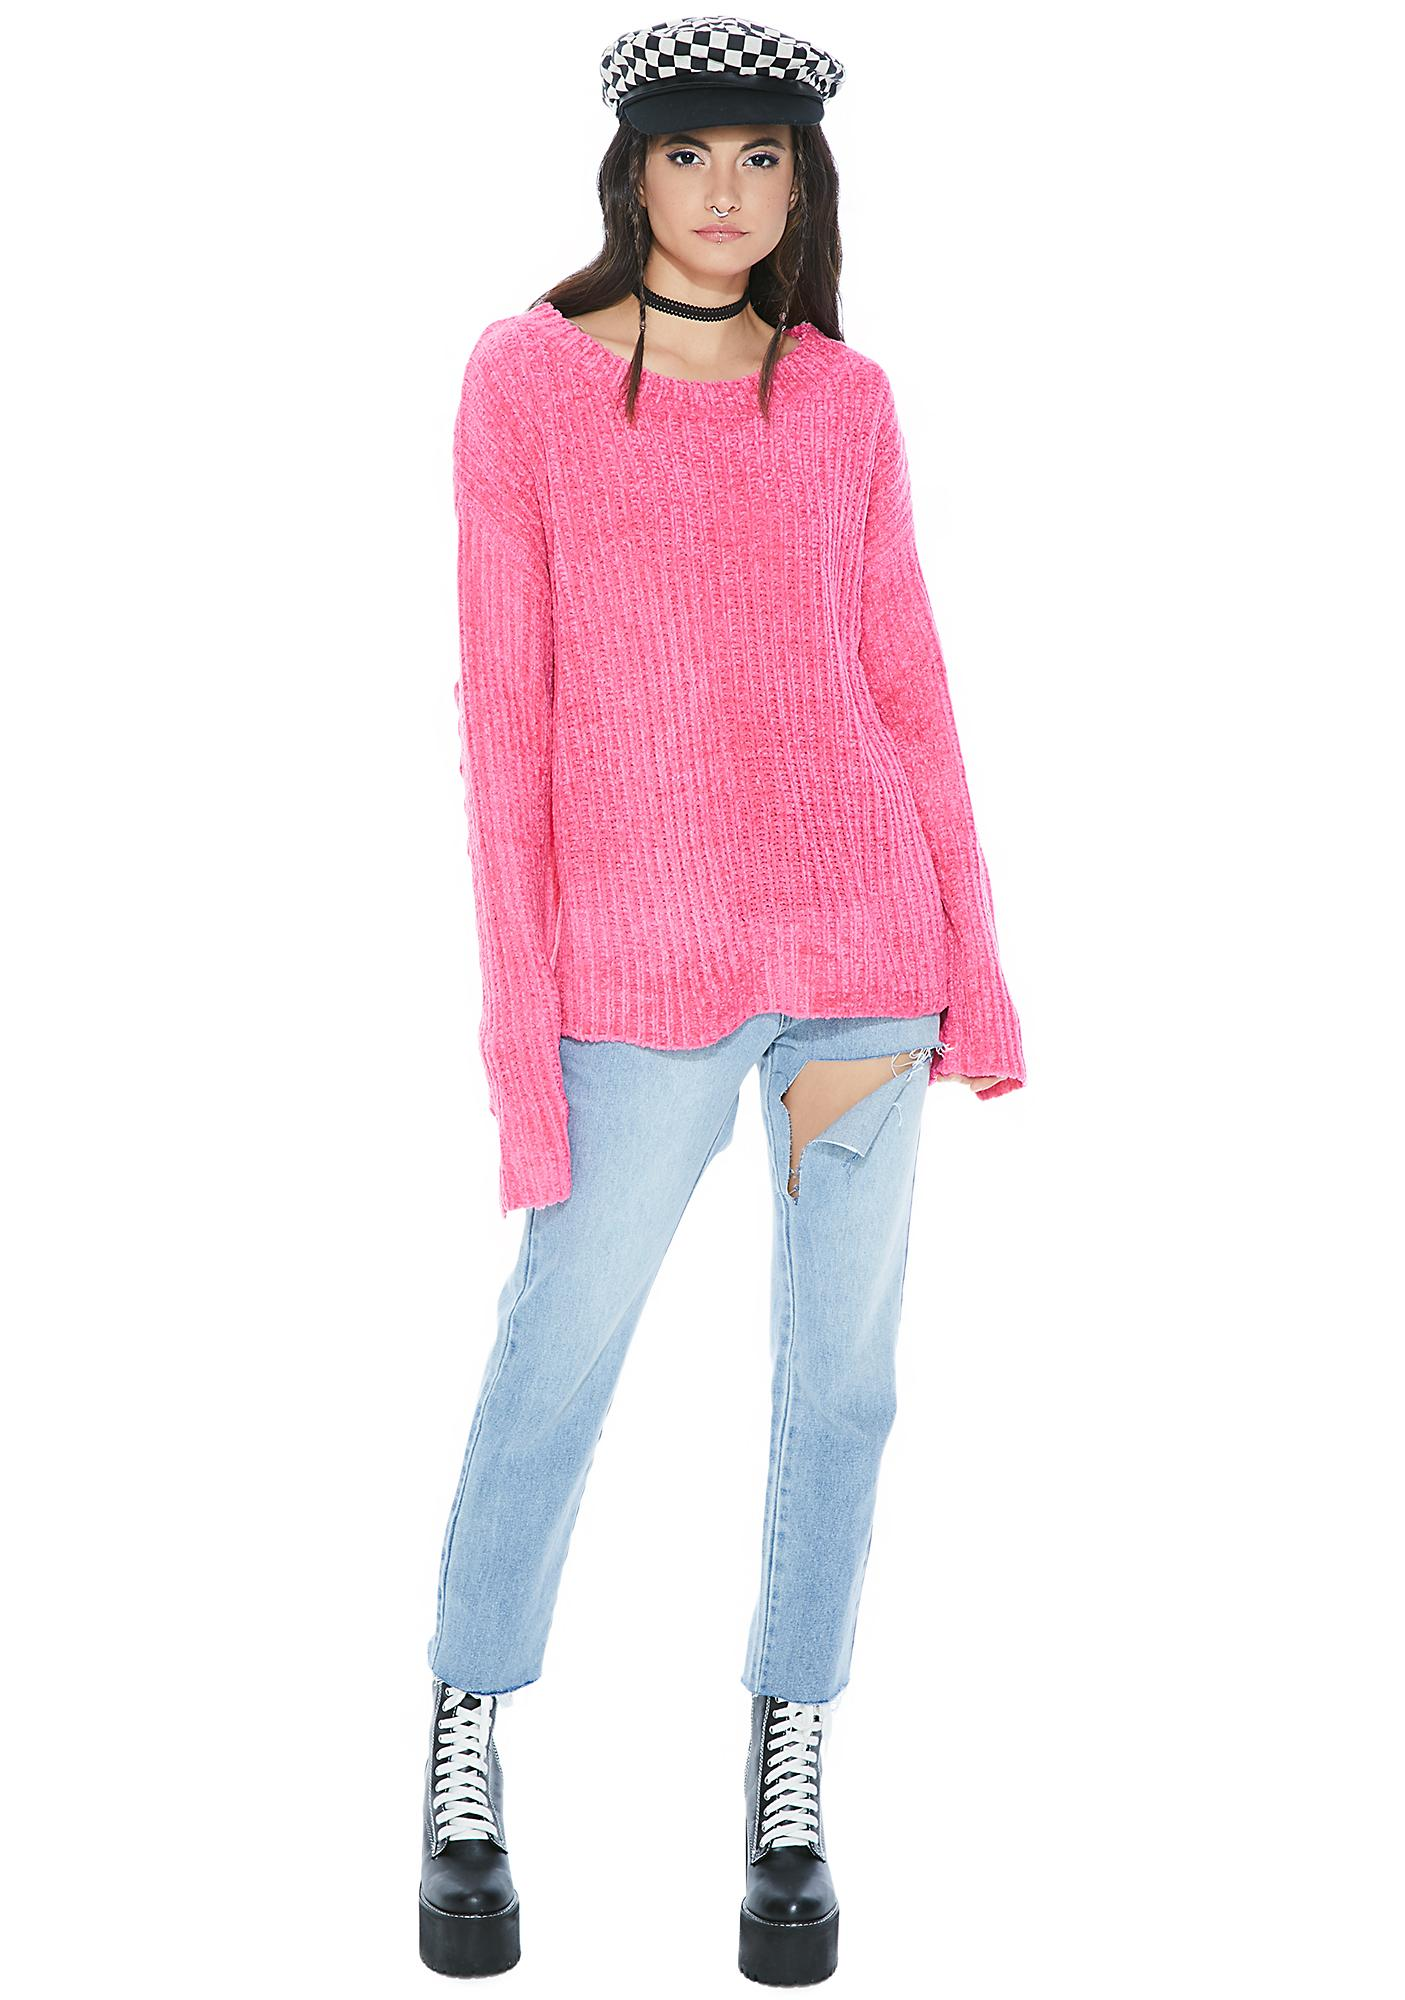 Heart N' Soul Knit Sweater